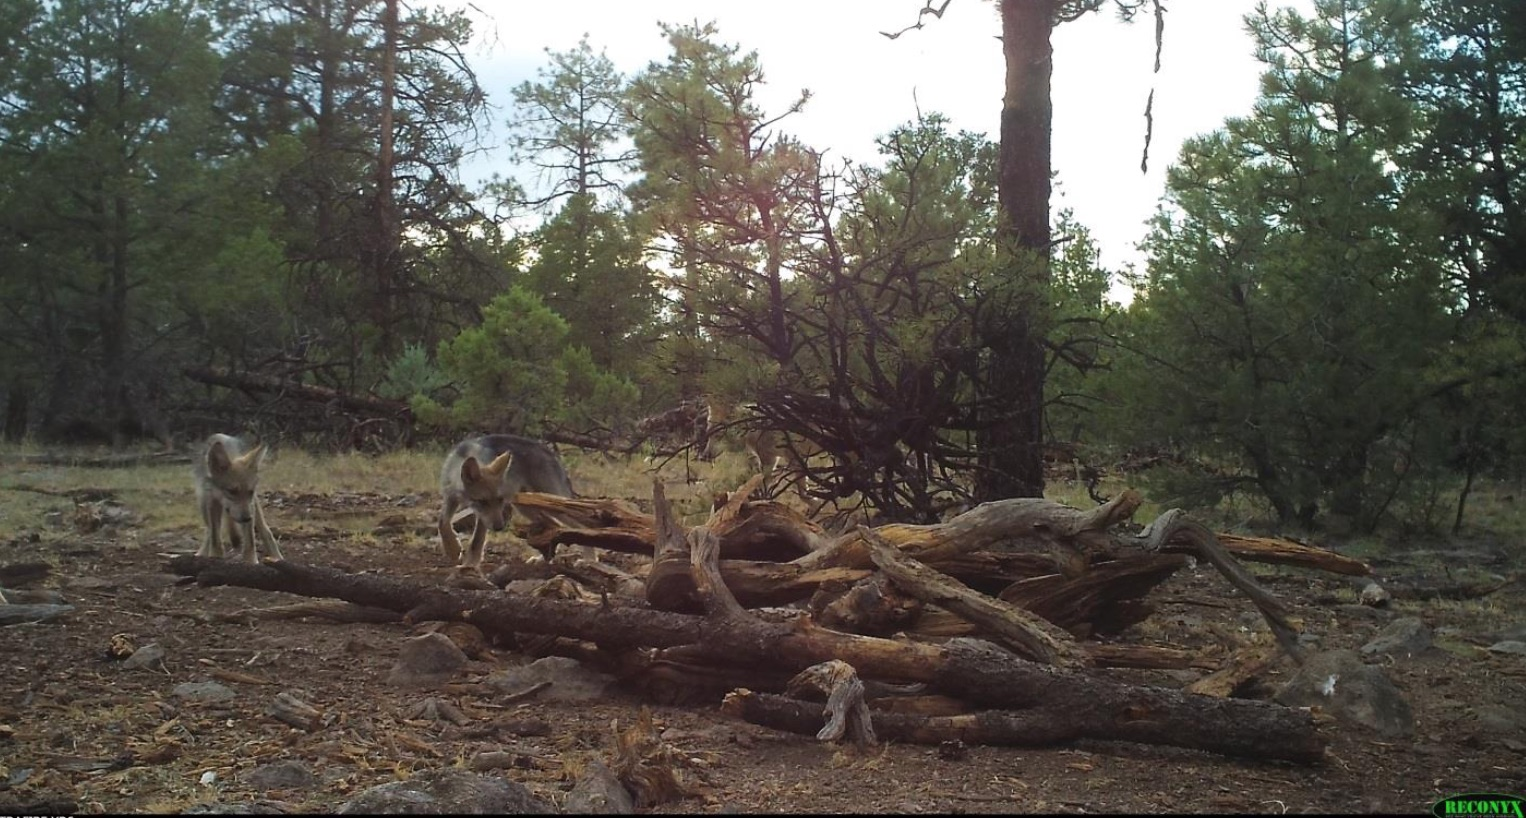 Mexican gray wolf pups on camera trap